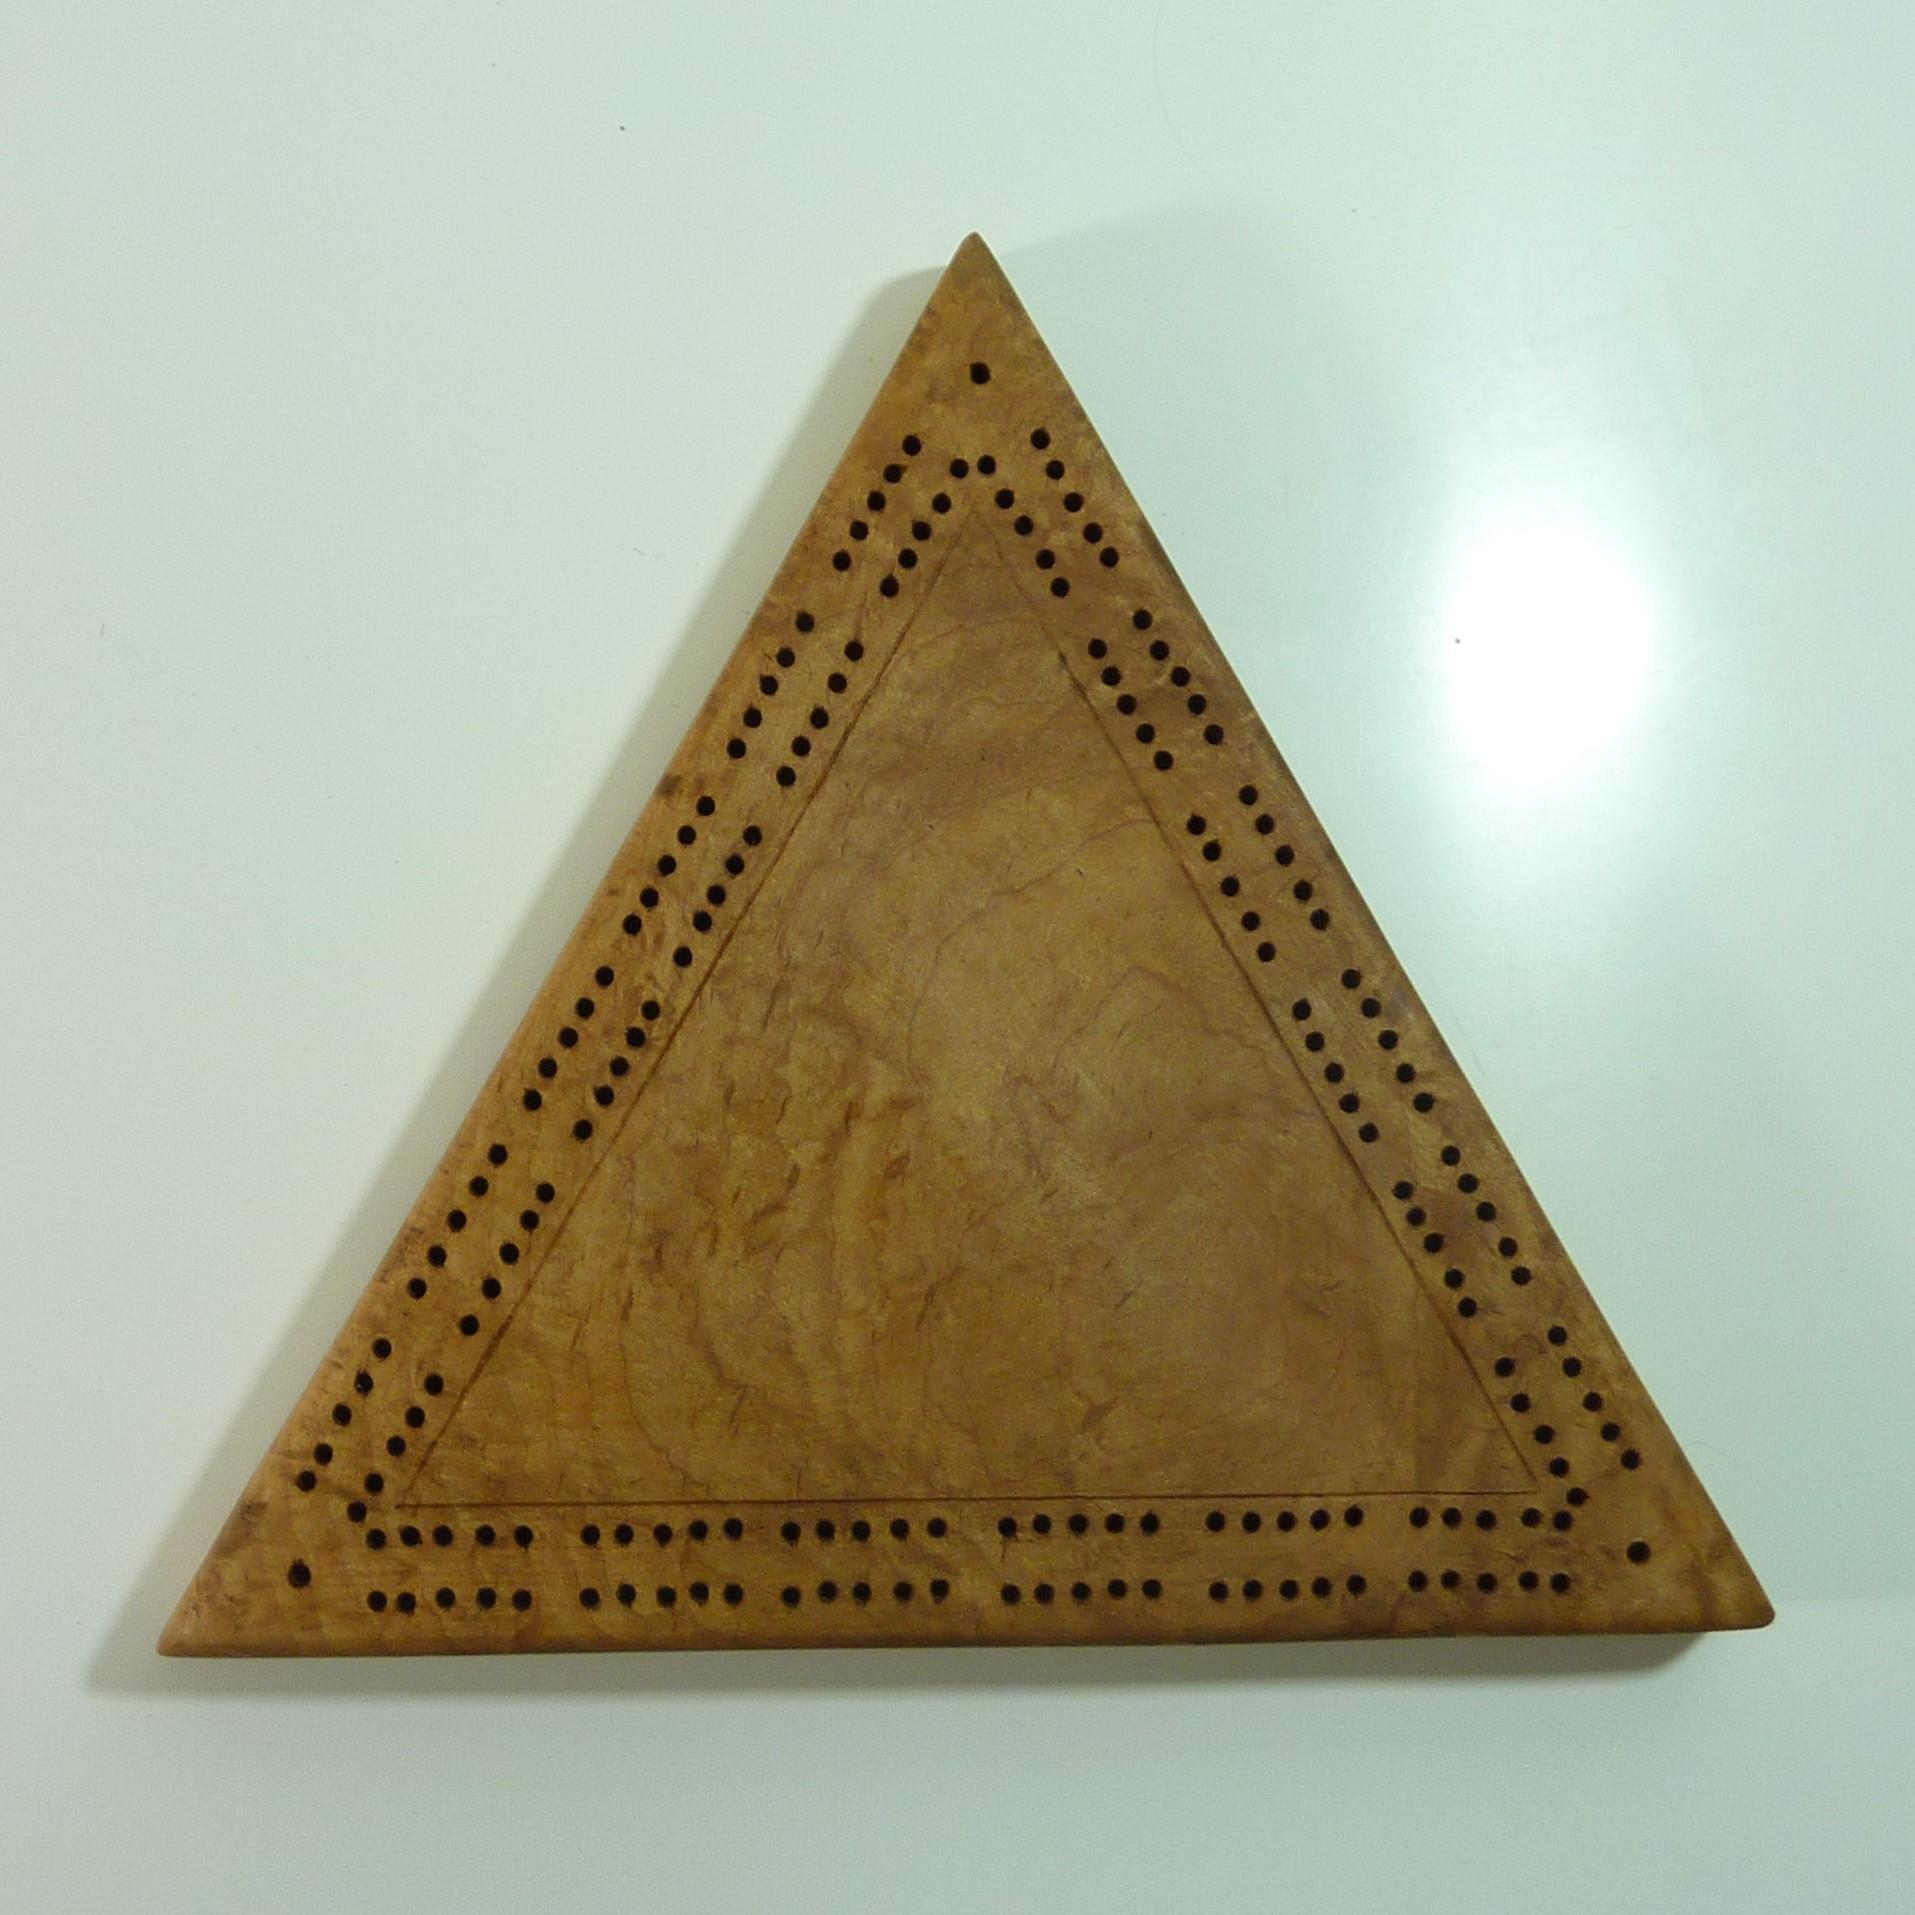 Wood Triangular shaped Cribbage Board